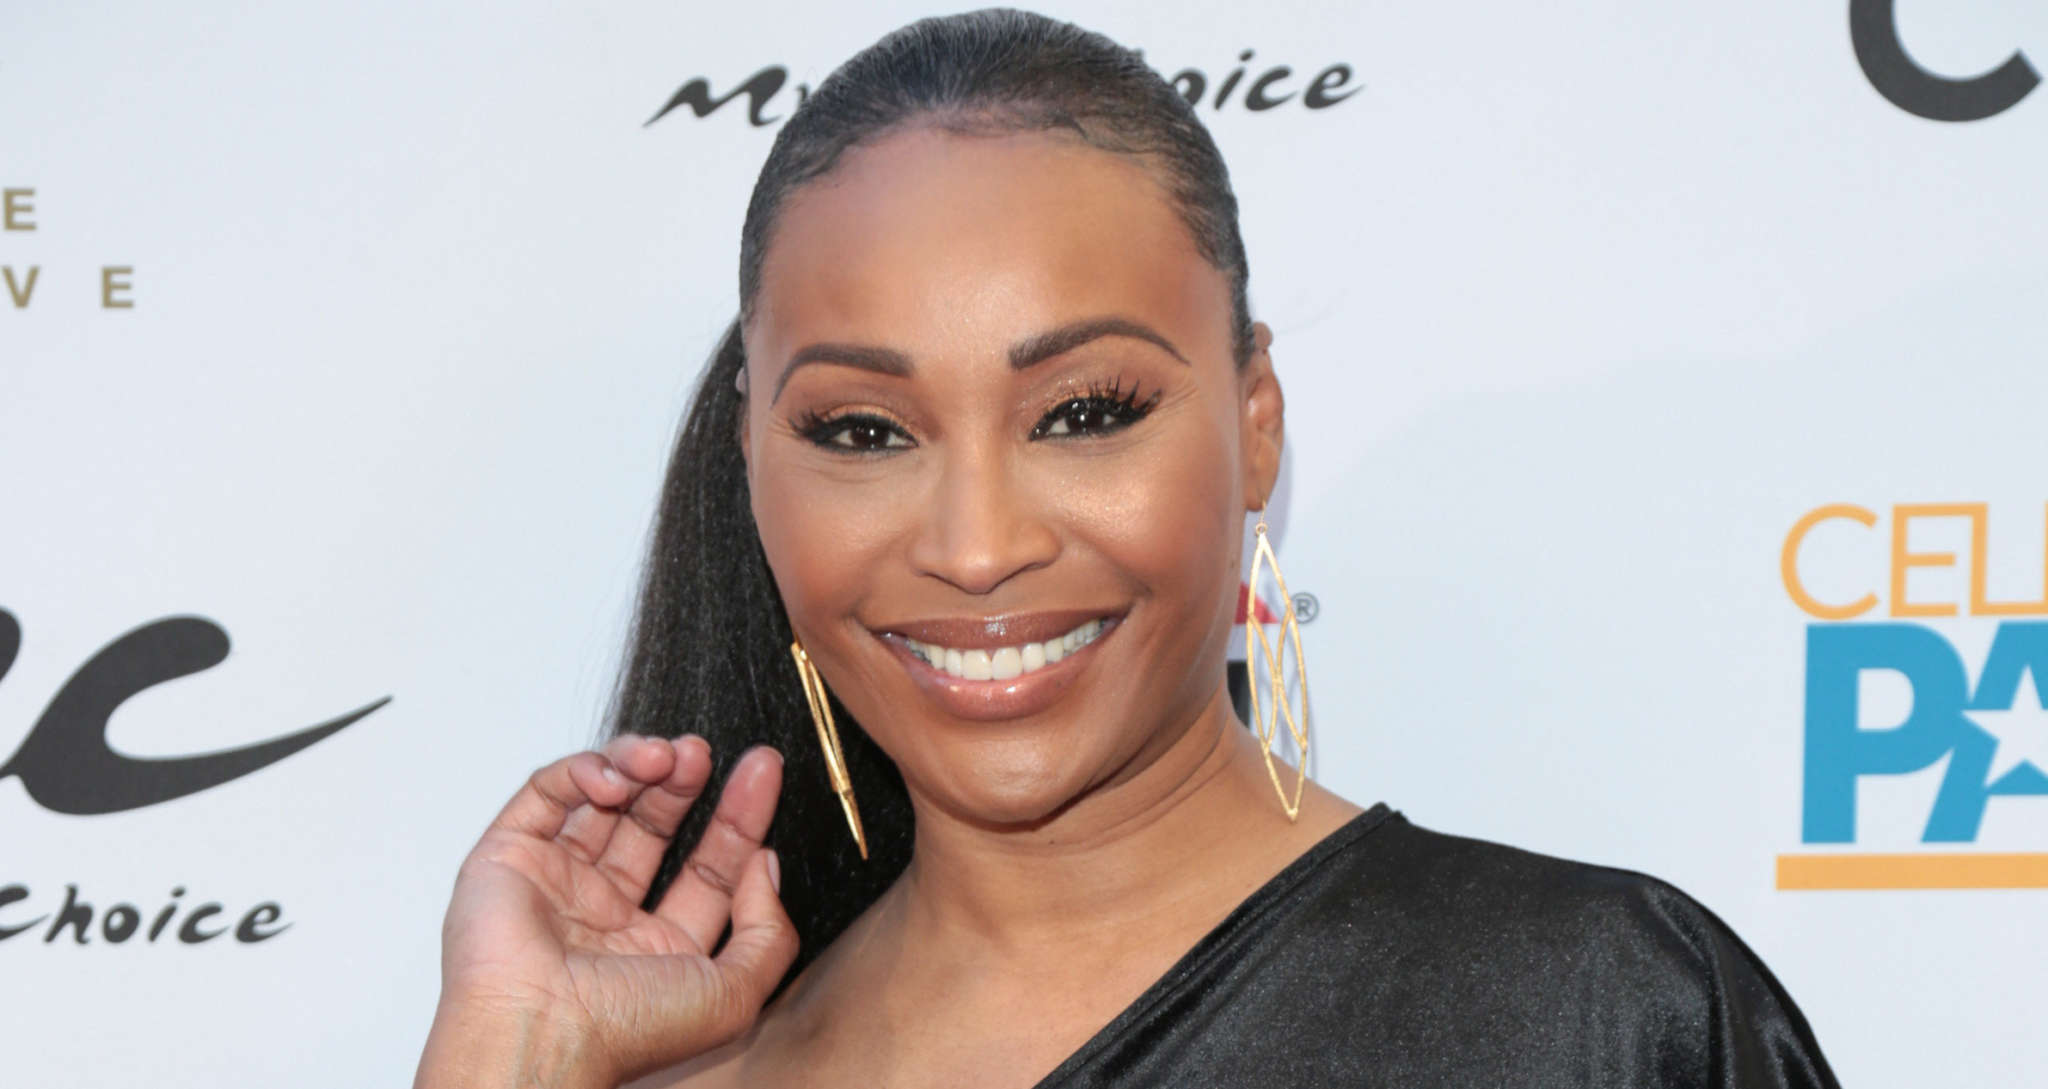 Cynthia Bailey Shares Some Words OF Wisdom With Her Fans - Check Out Her True Message Here